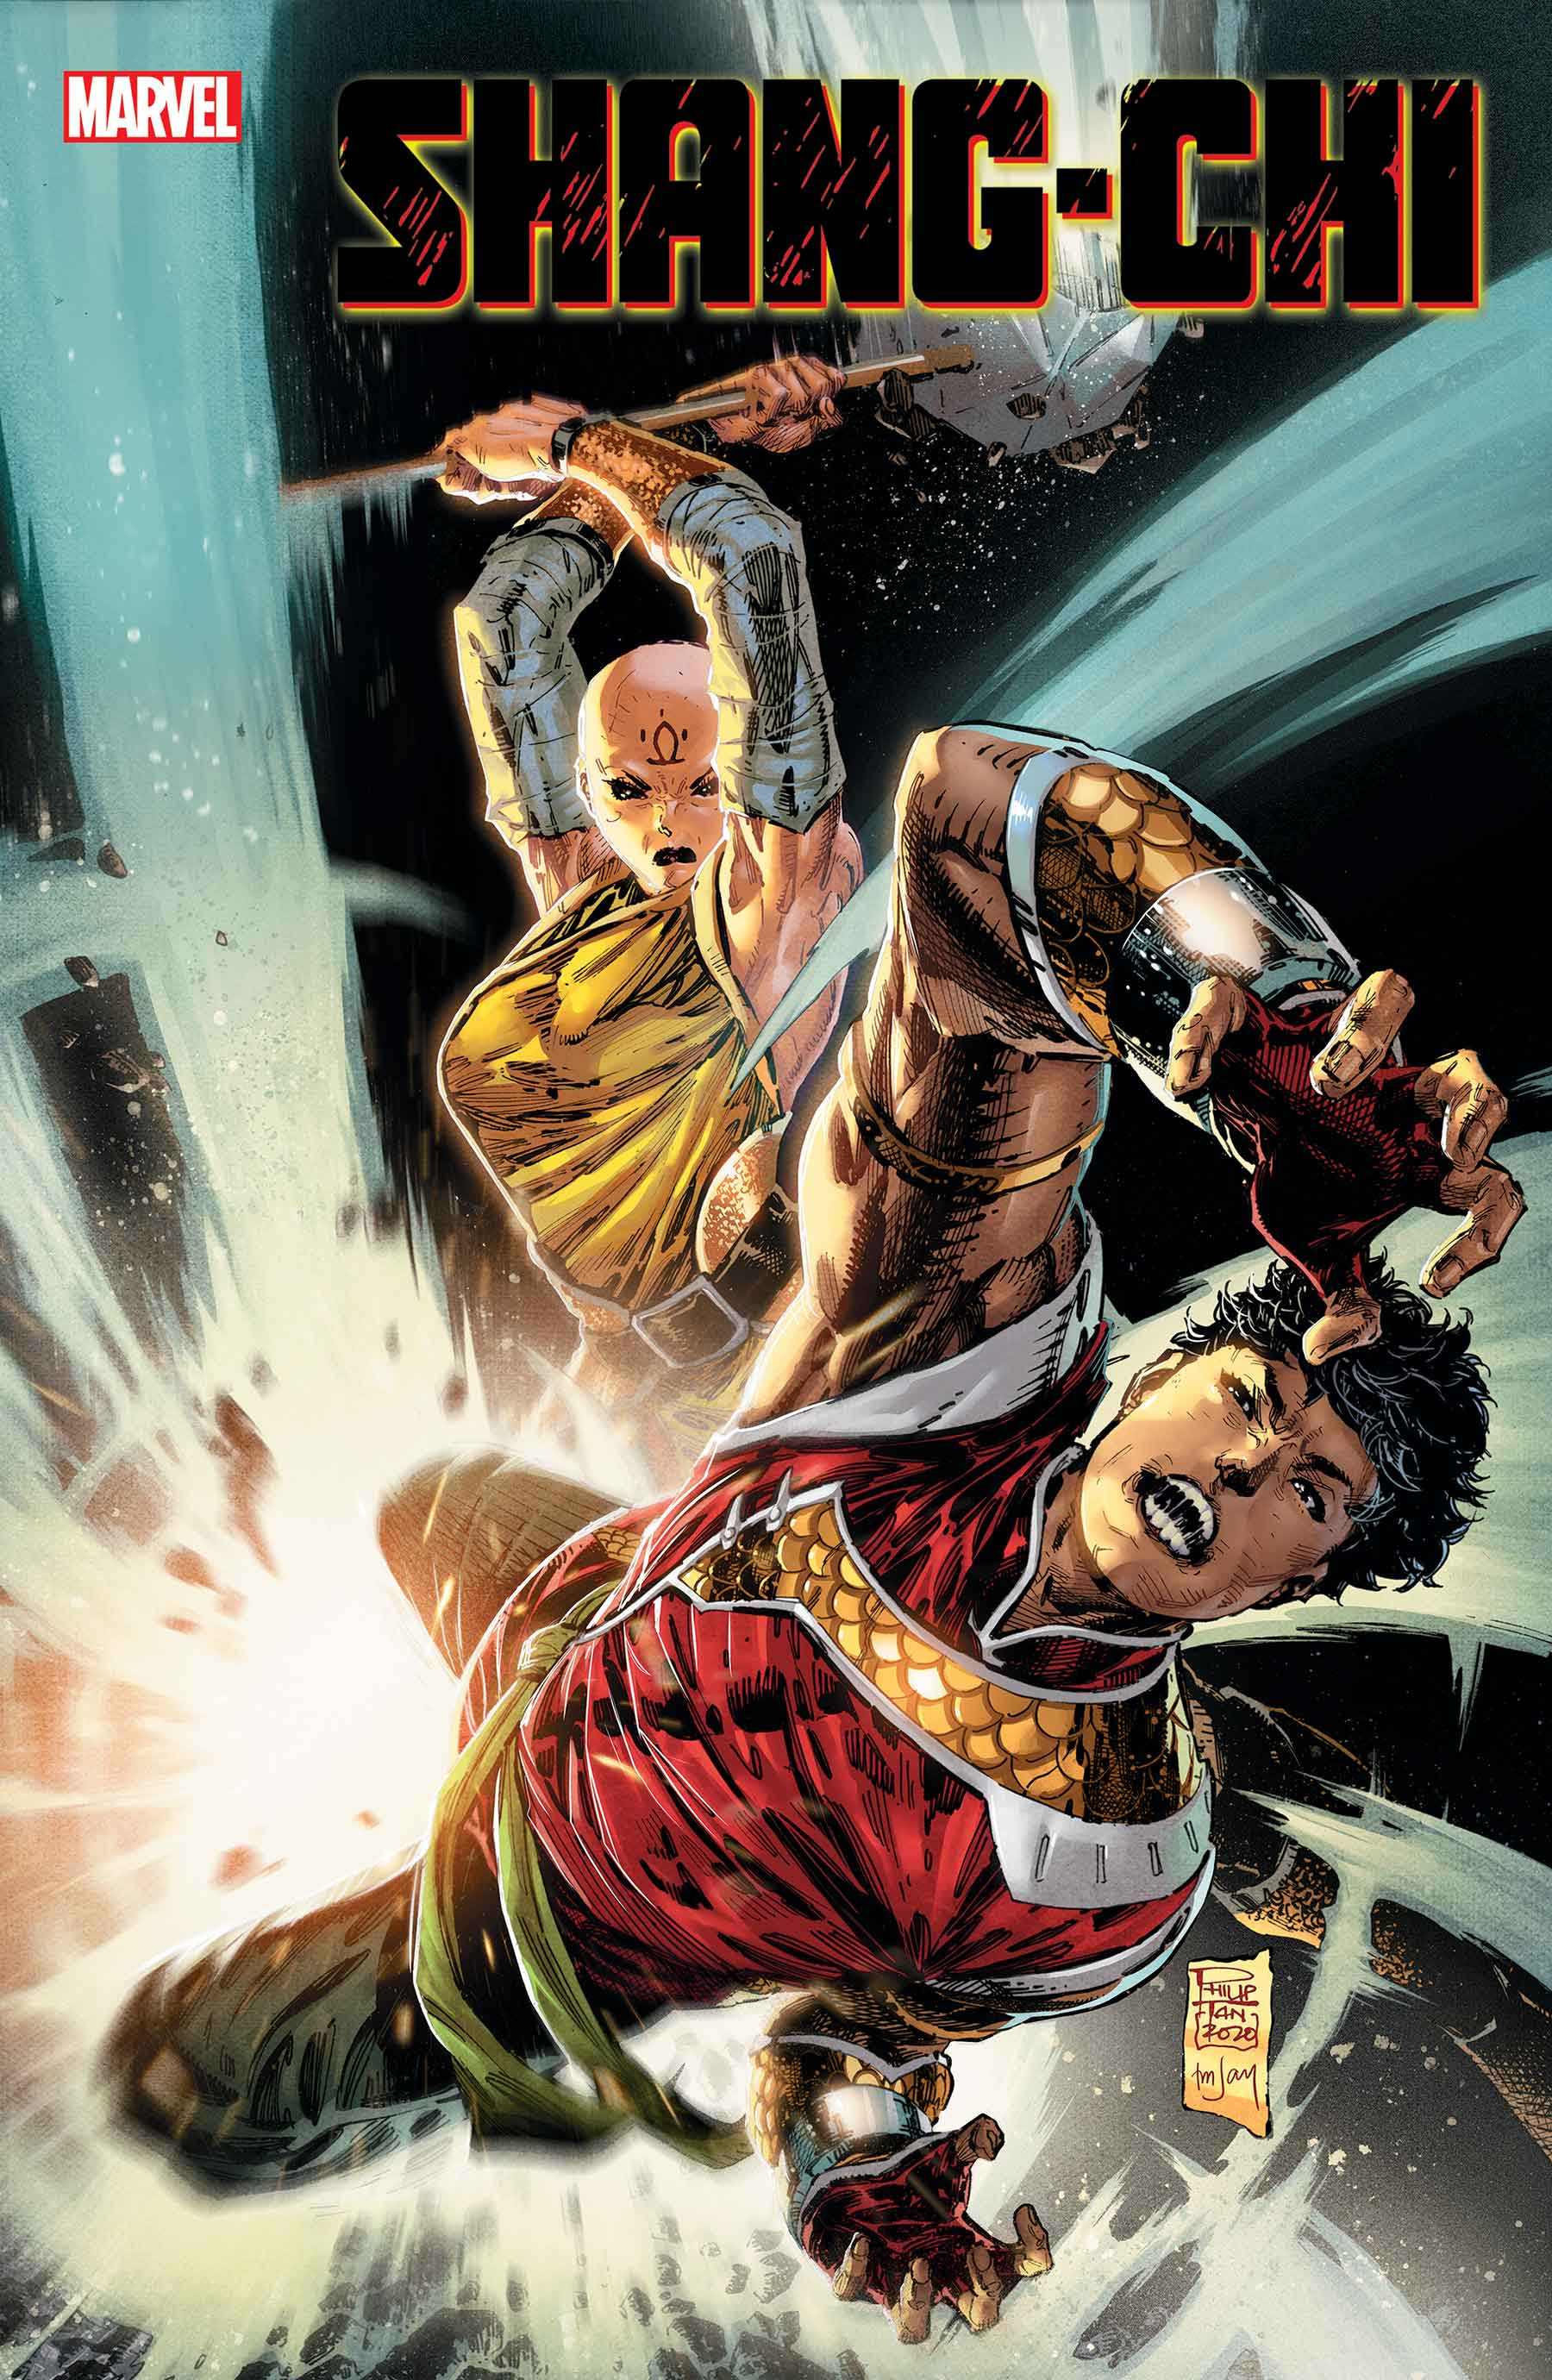 Shang-Chi #2 Cover Art by Philip Tan